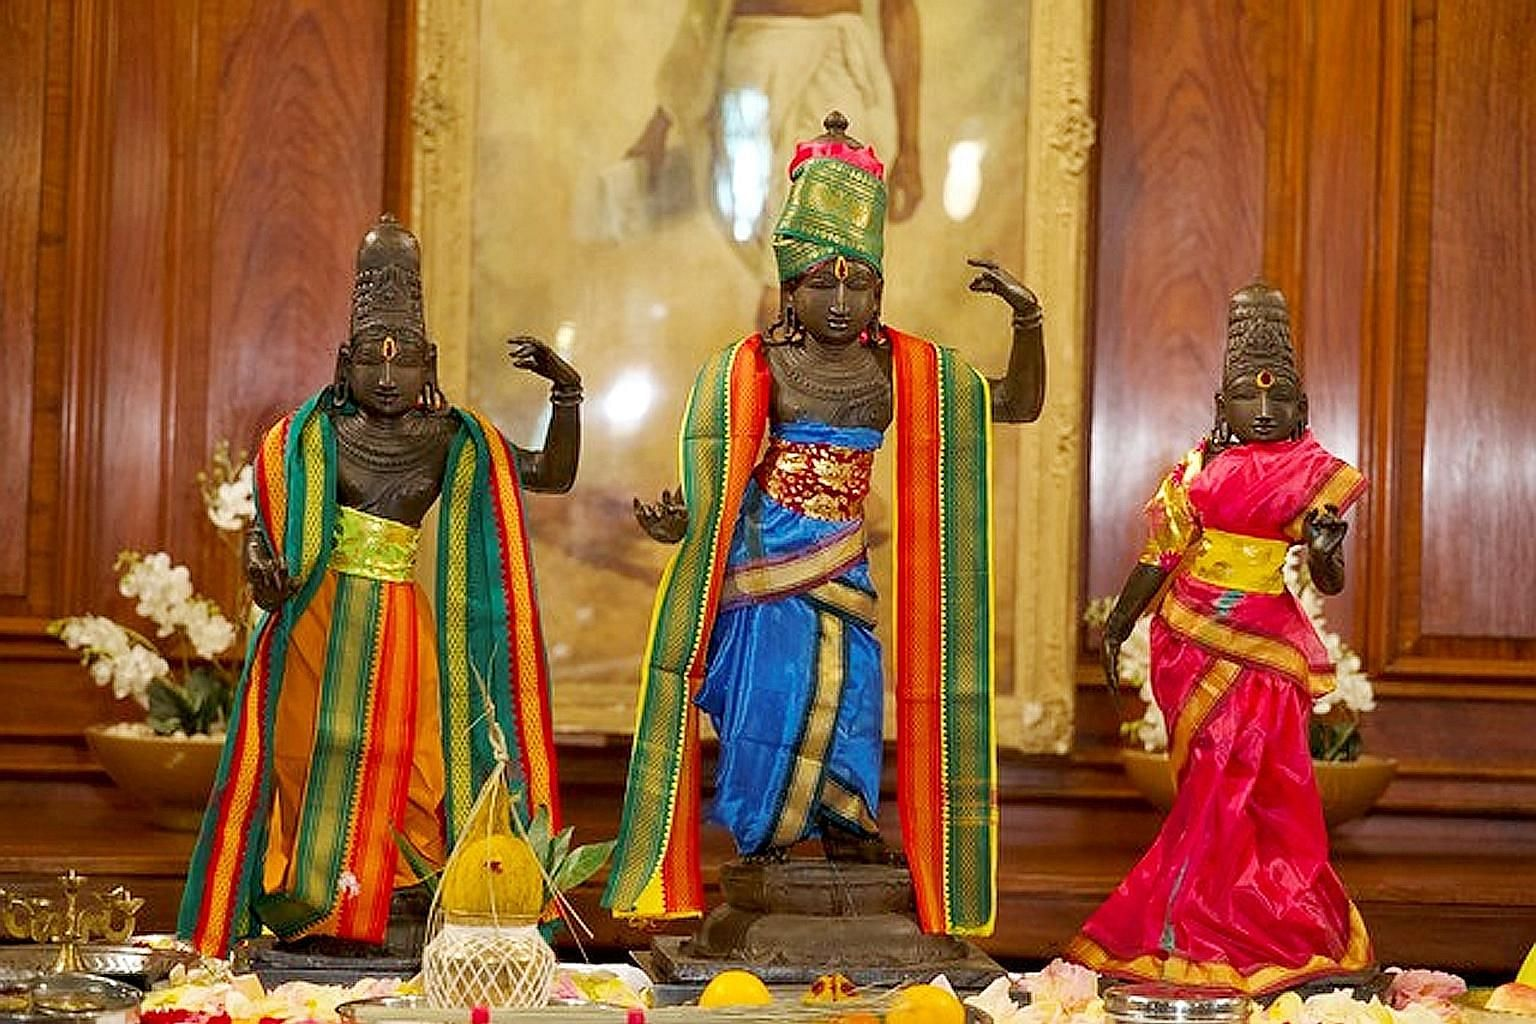 The three bronze statues were among four that were stolen in 1978 from a Hindu temple in India. The thieves were convicted in India at the time, but it was only last year that three of the statues were found, when the Indian High Commission in London